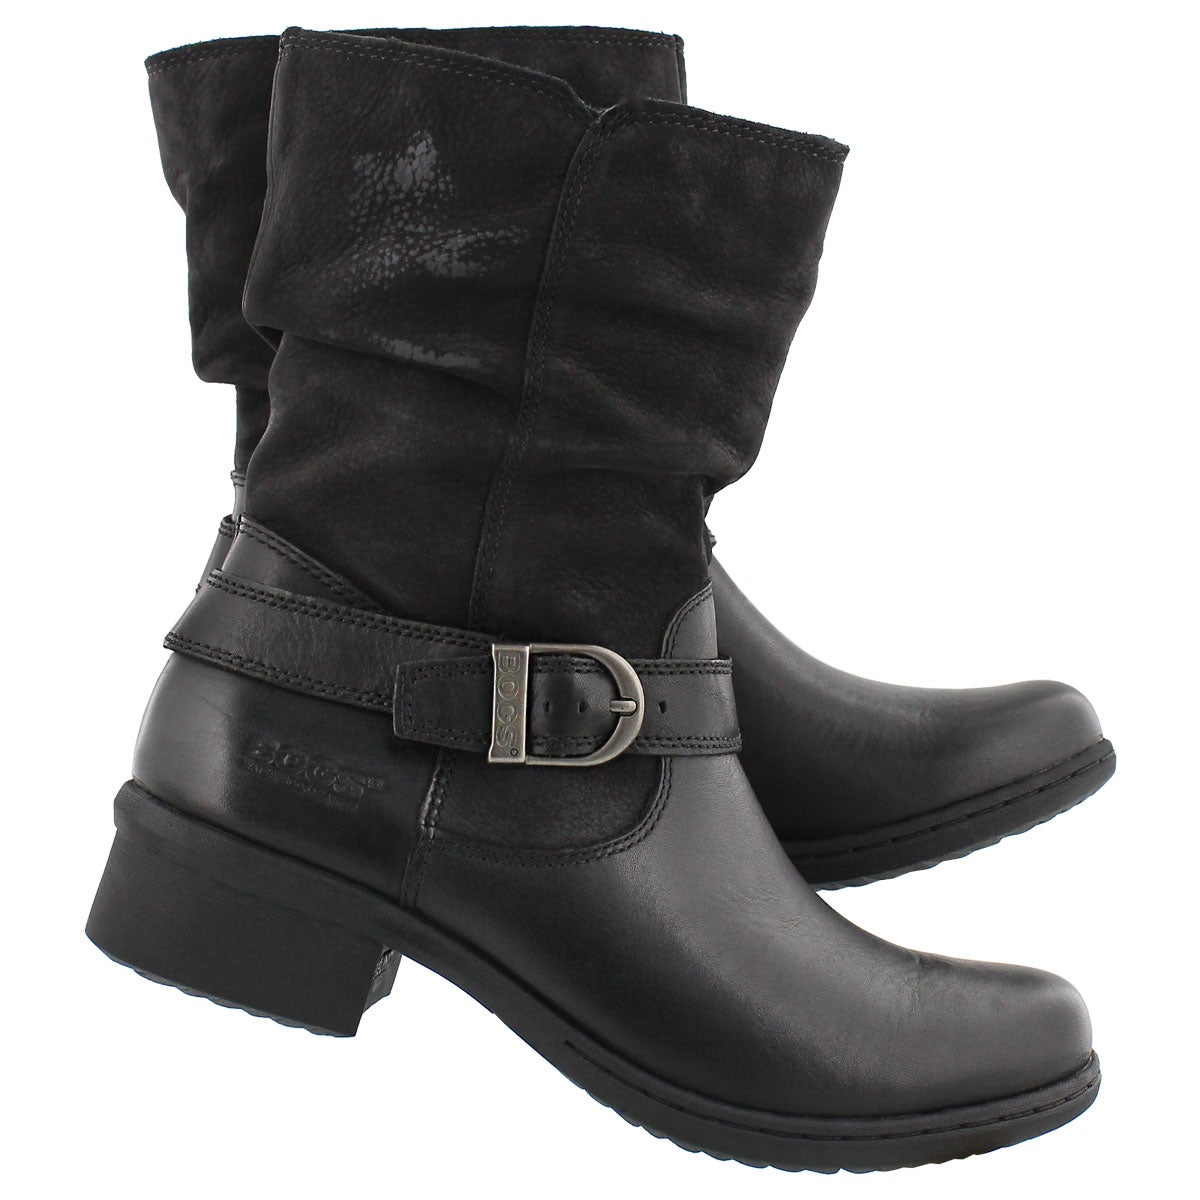 Lds Carly Mid black wtpf ankle boot